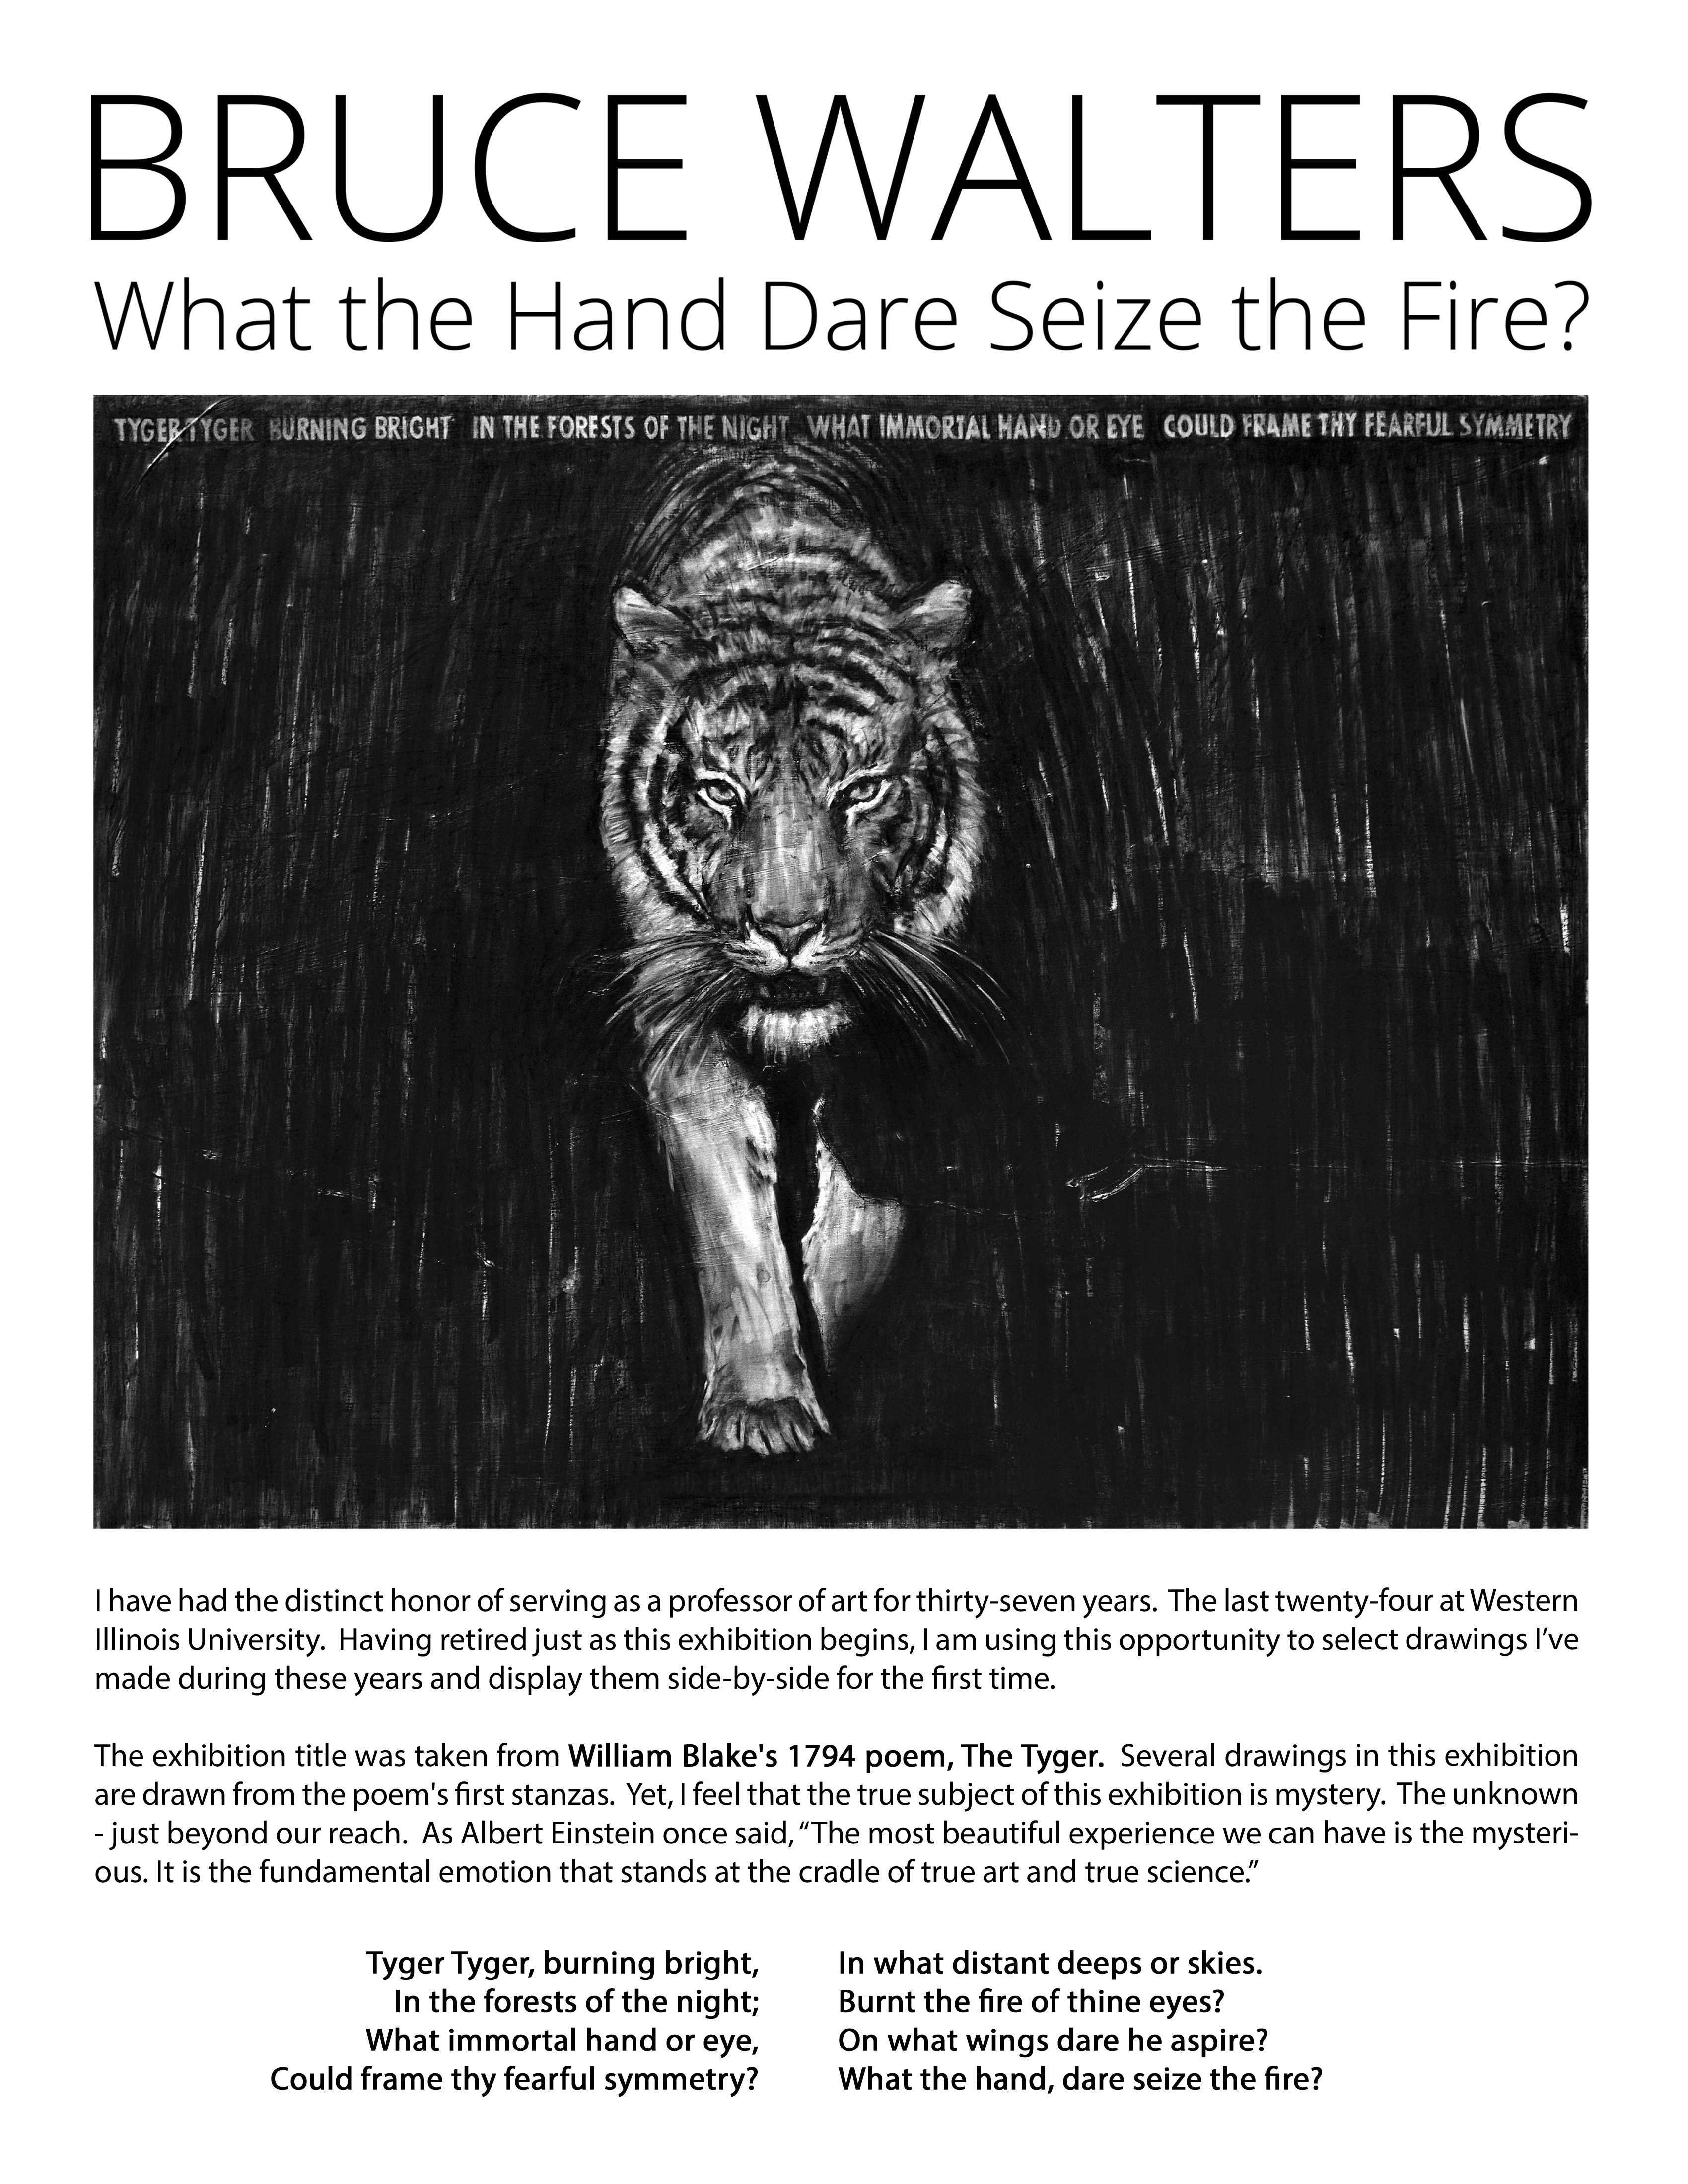 Bruce Walters: What the Hand Dare Seize the Fire? Image